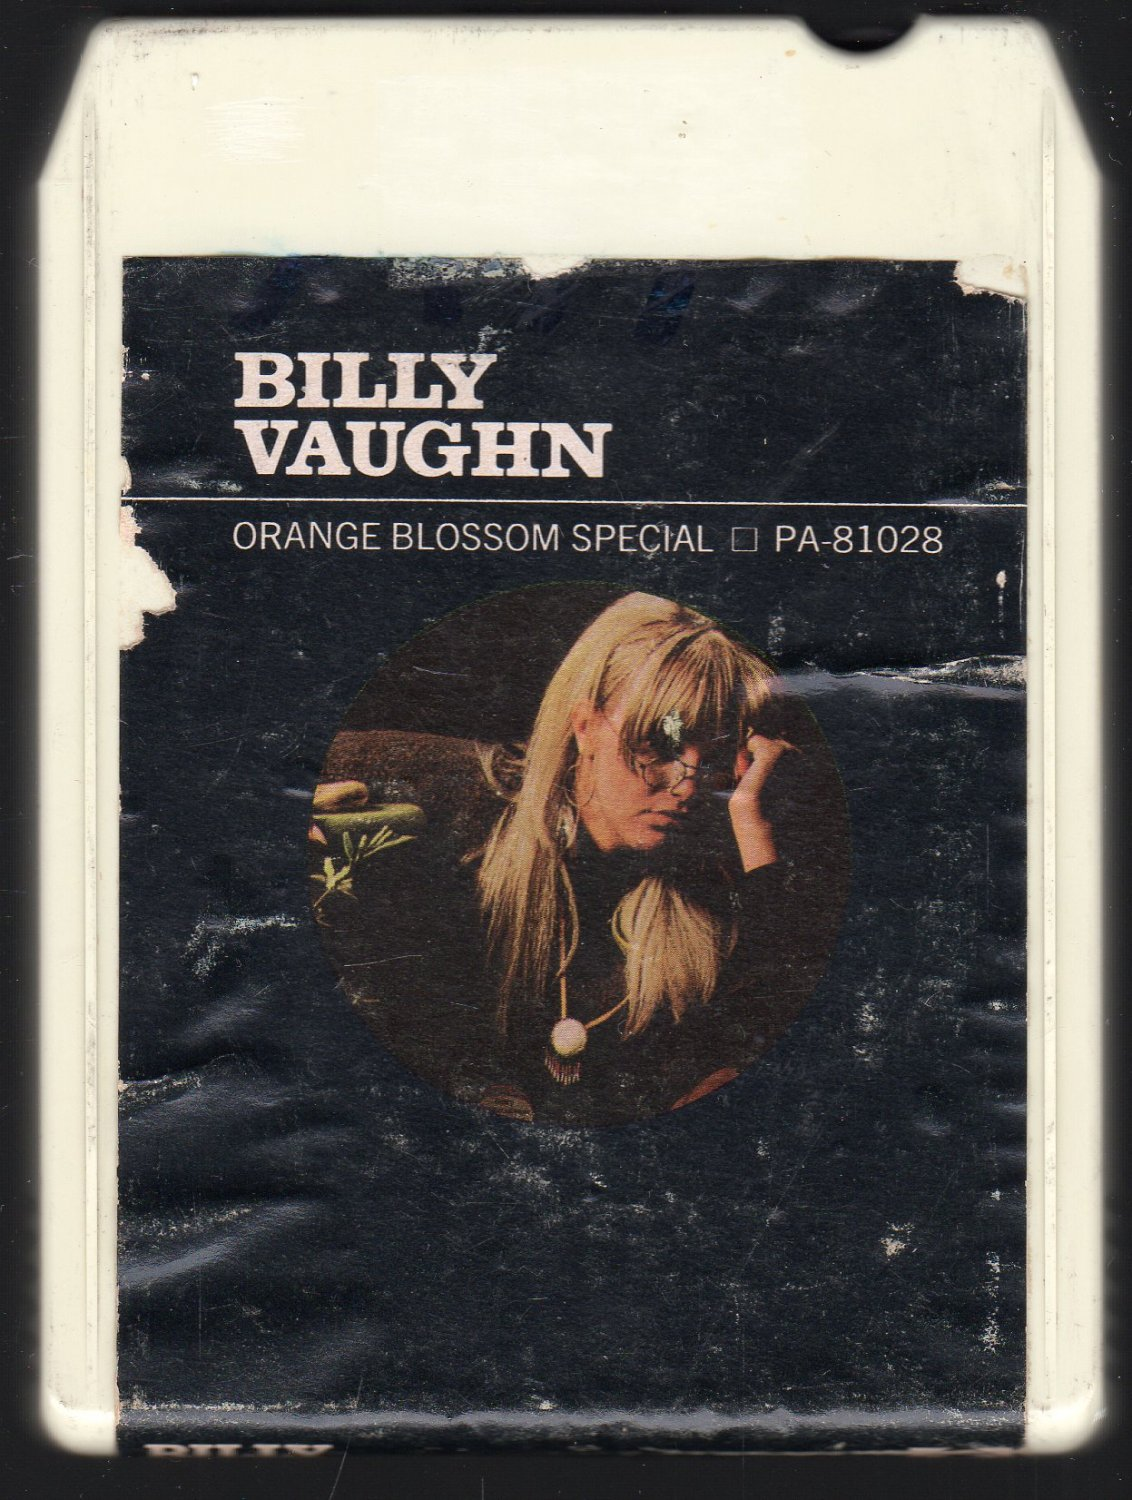 Billy Vaughn - Orange Blossom Special 1960 PARAMOUNT Re-issue A19B 8-track tape